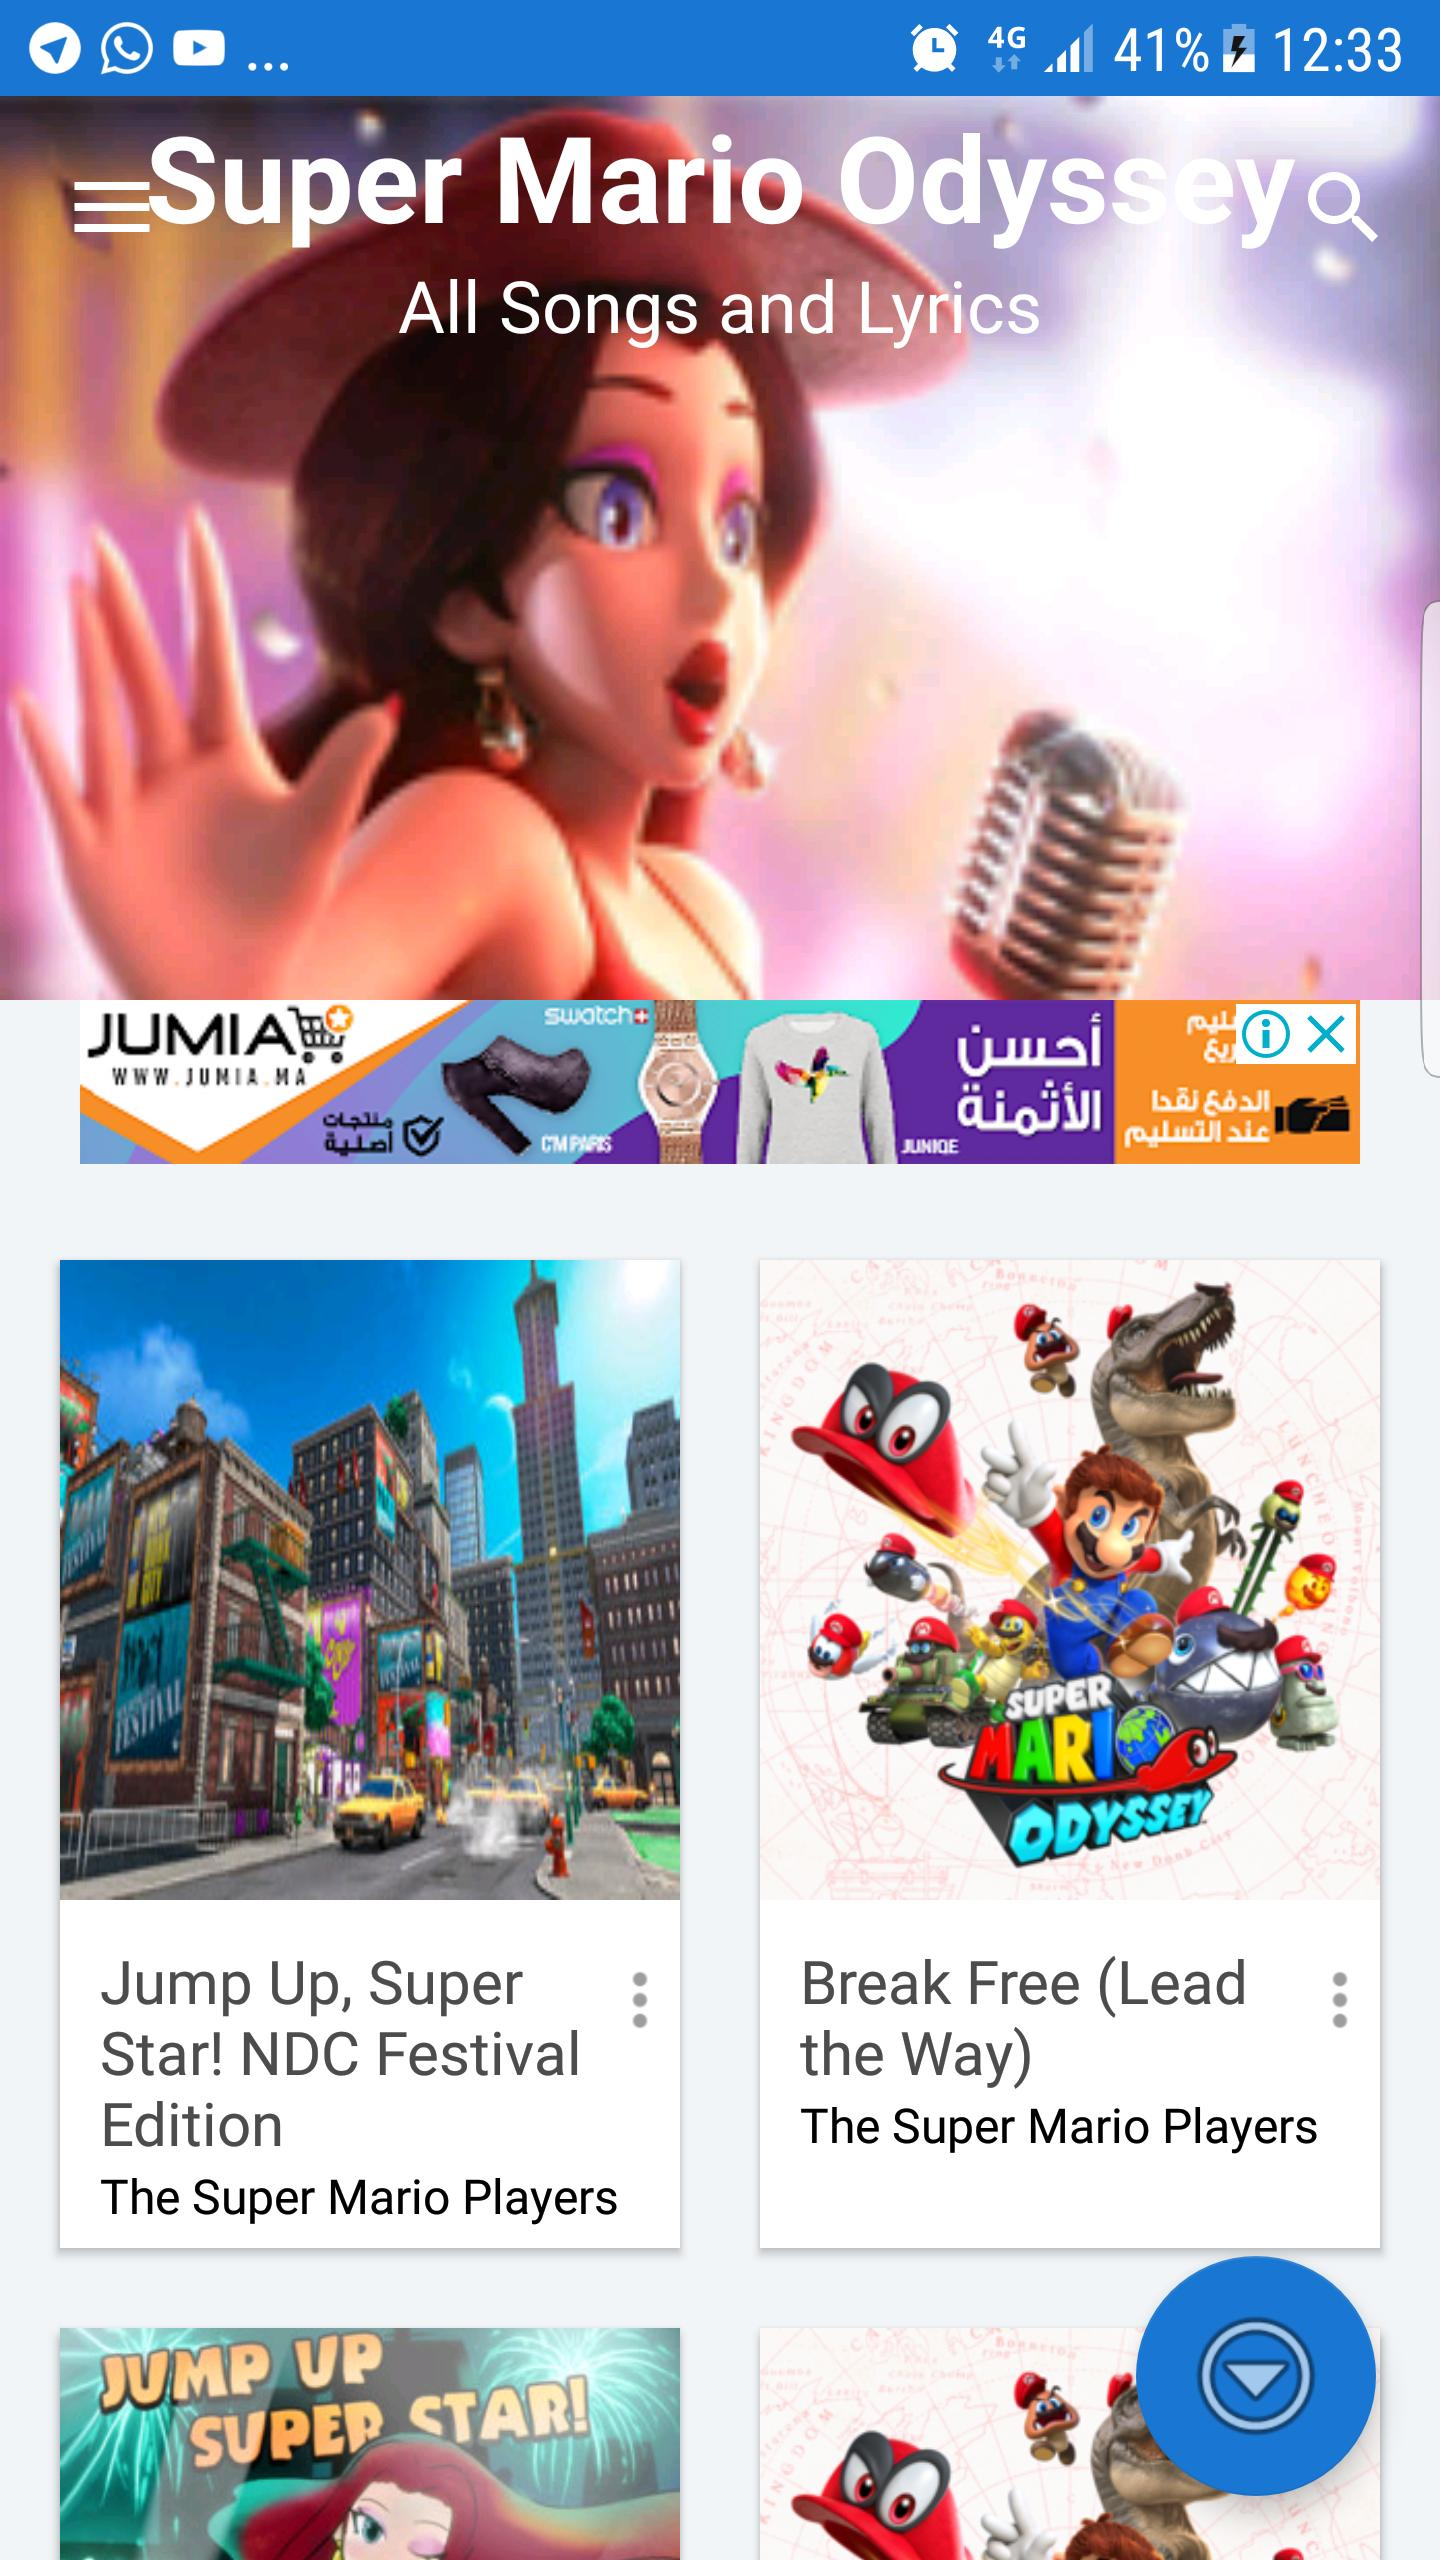 All Songs And Lyrics For Mario Odyssey For Android Apk Download